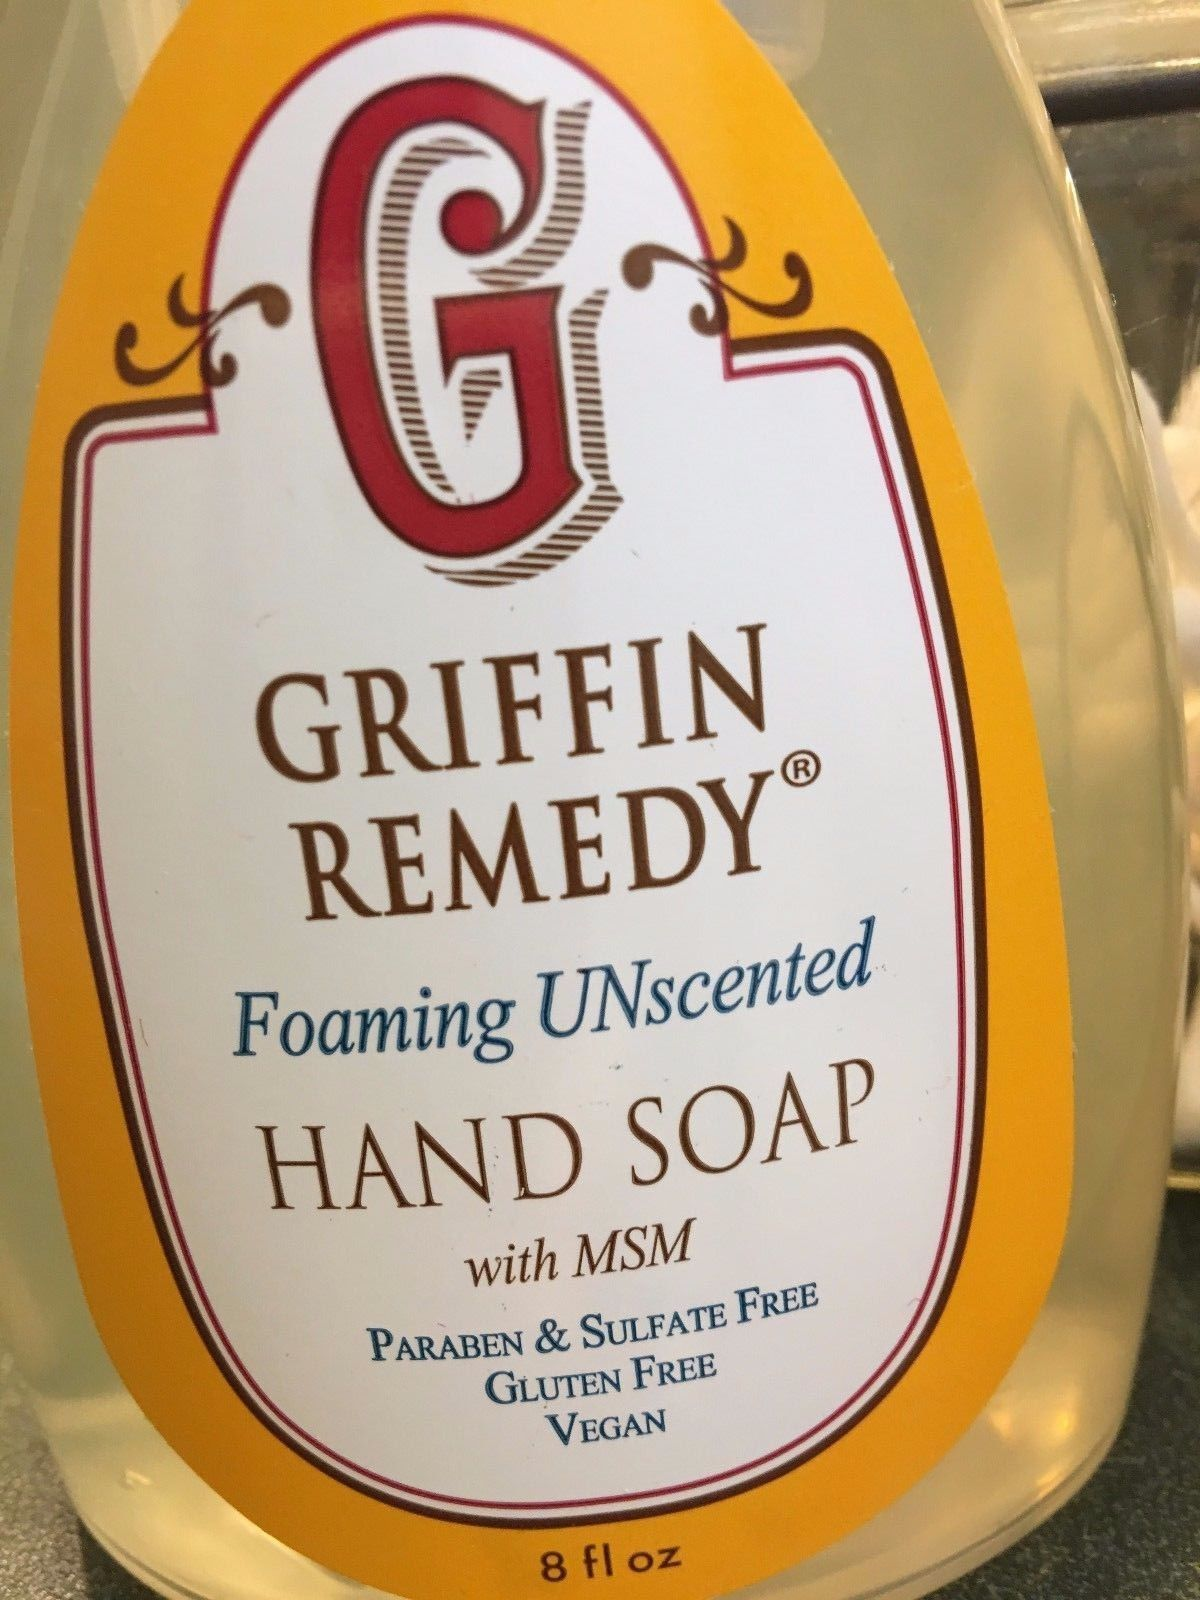 Griffin Remedy Foaming Hand Soap Vegan GF Cruelty Free